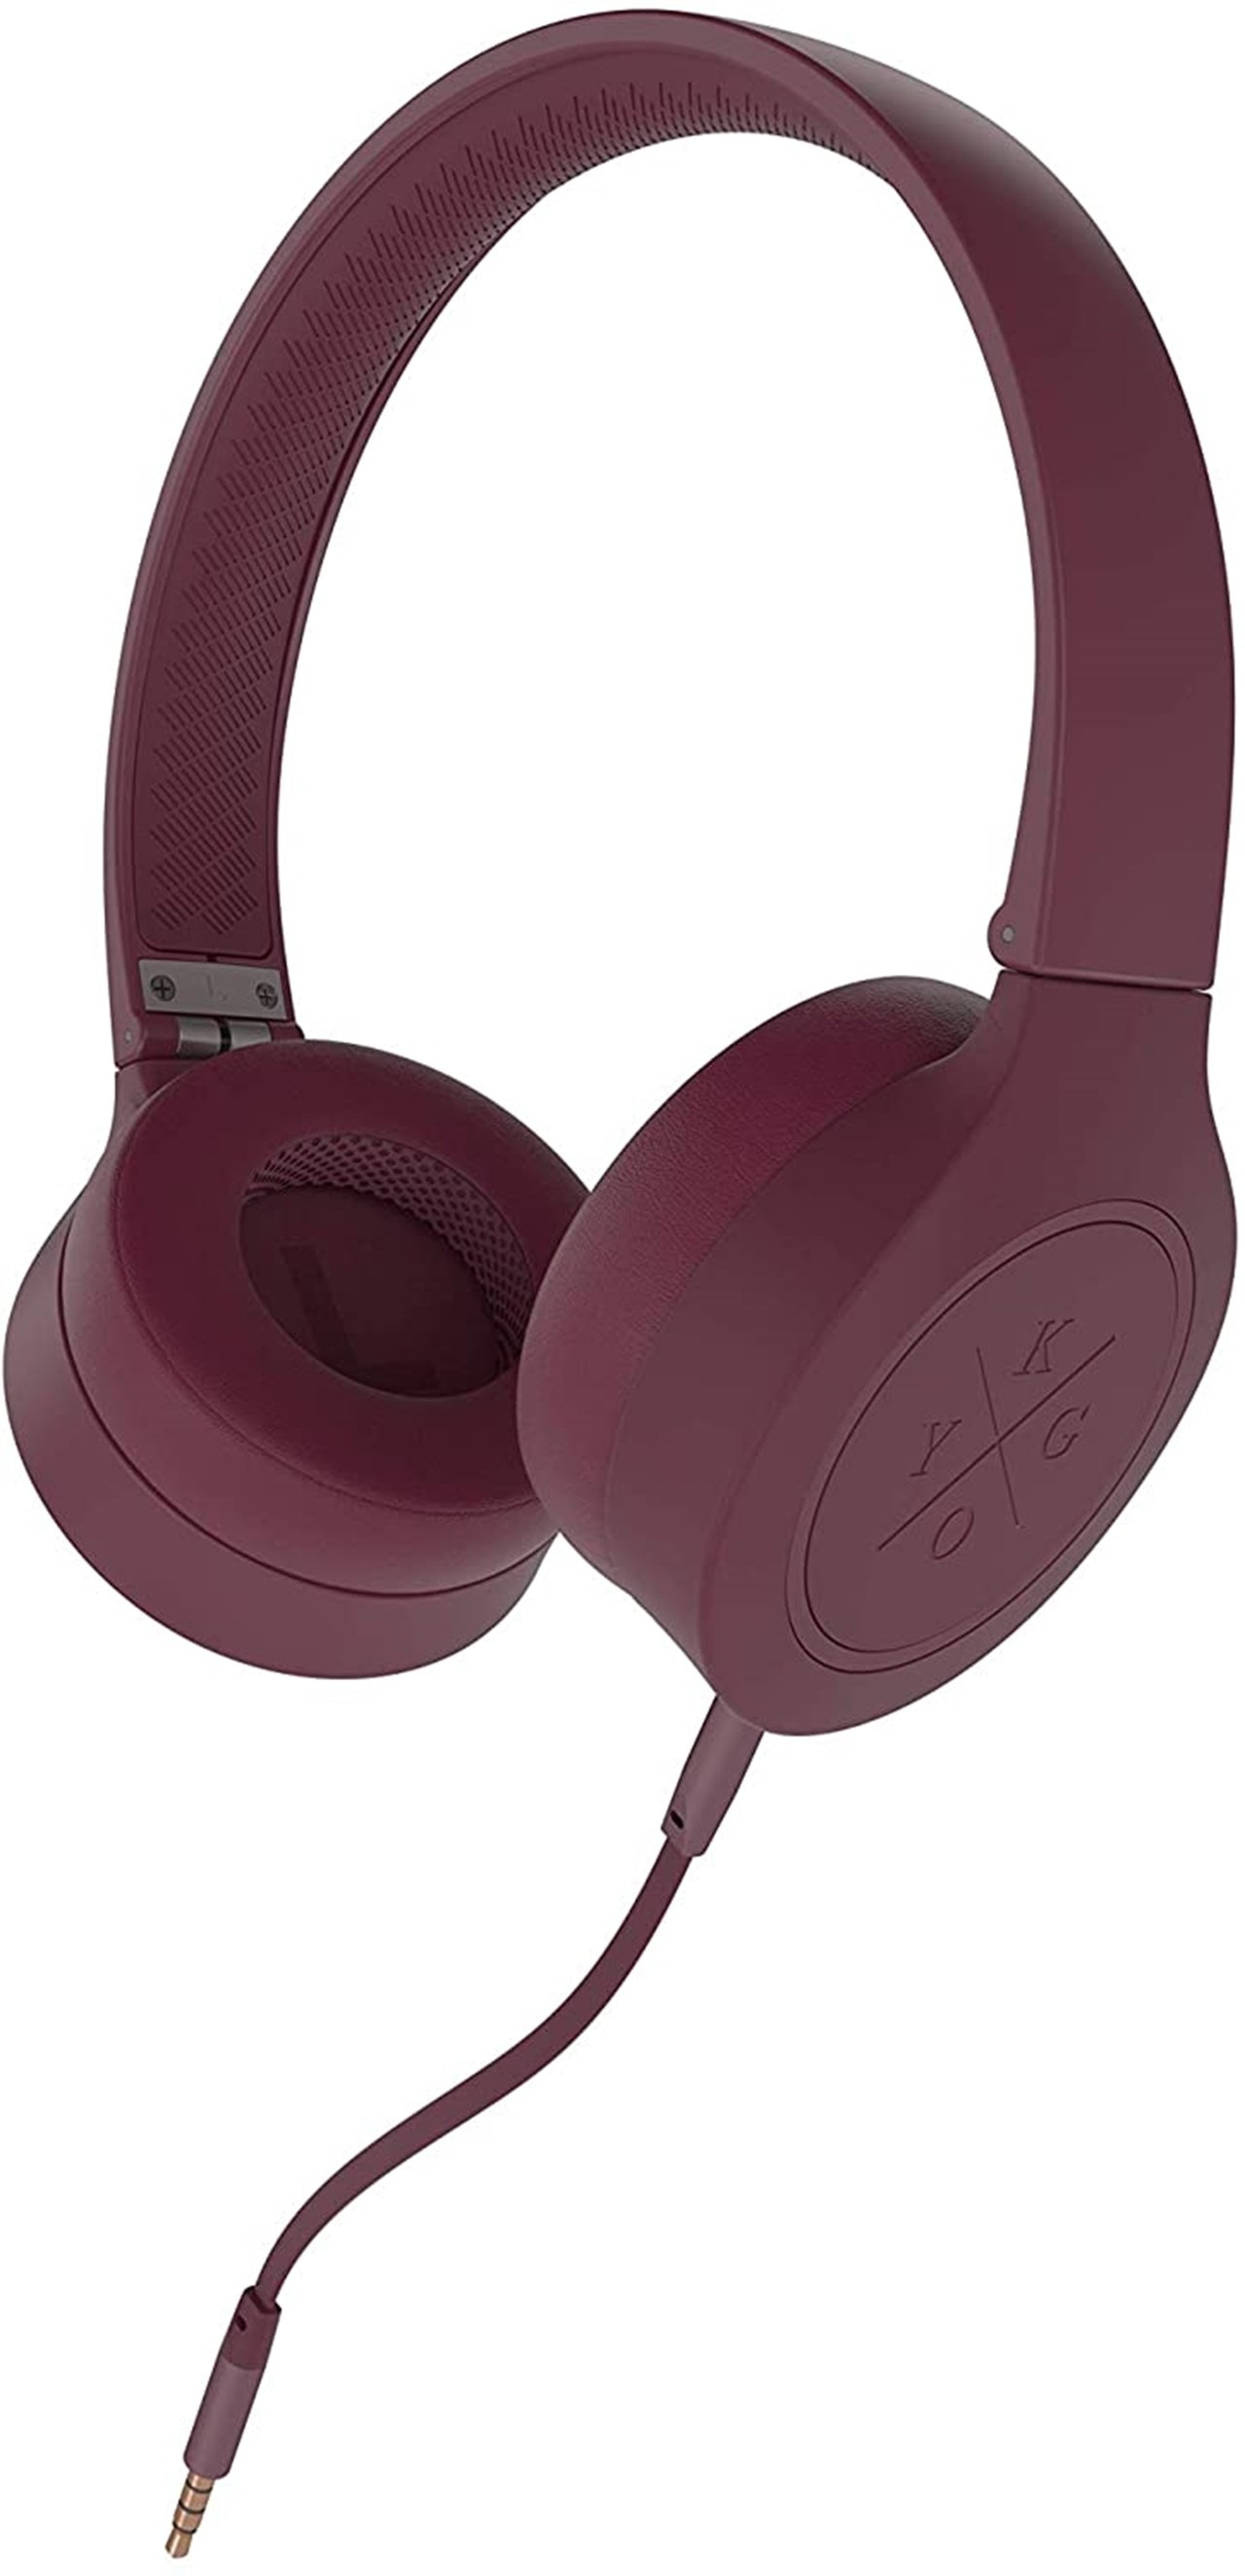 Kygo A4/300 Burgundy Bluetooth Headphones - 4